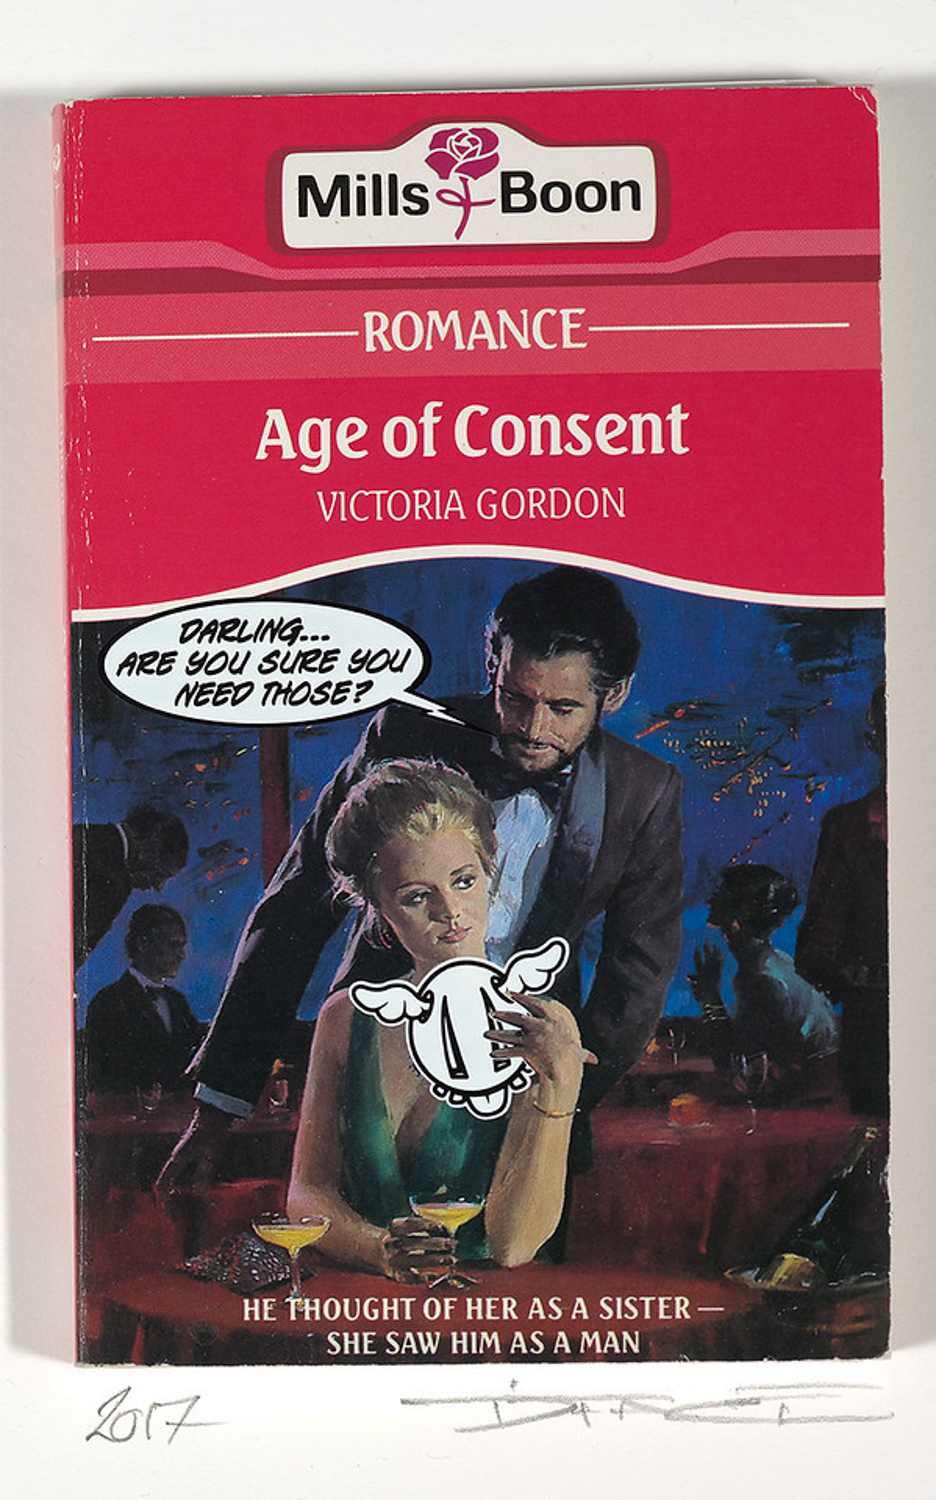 DFace - Age Of Consent